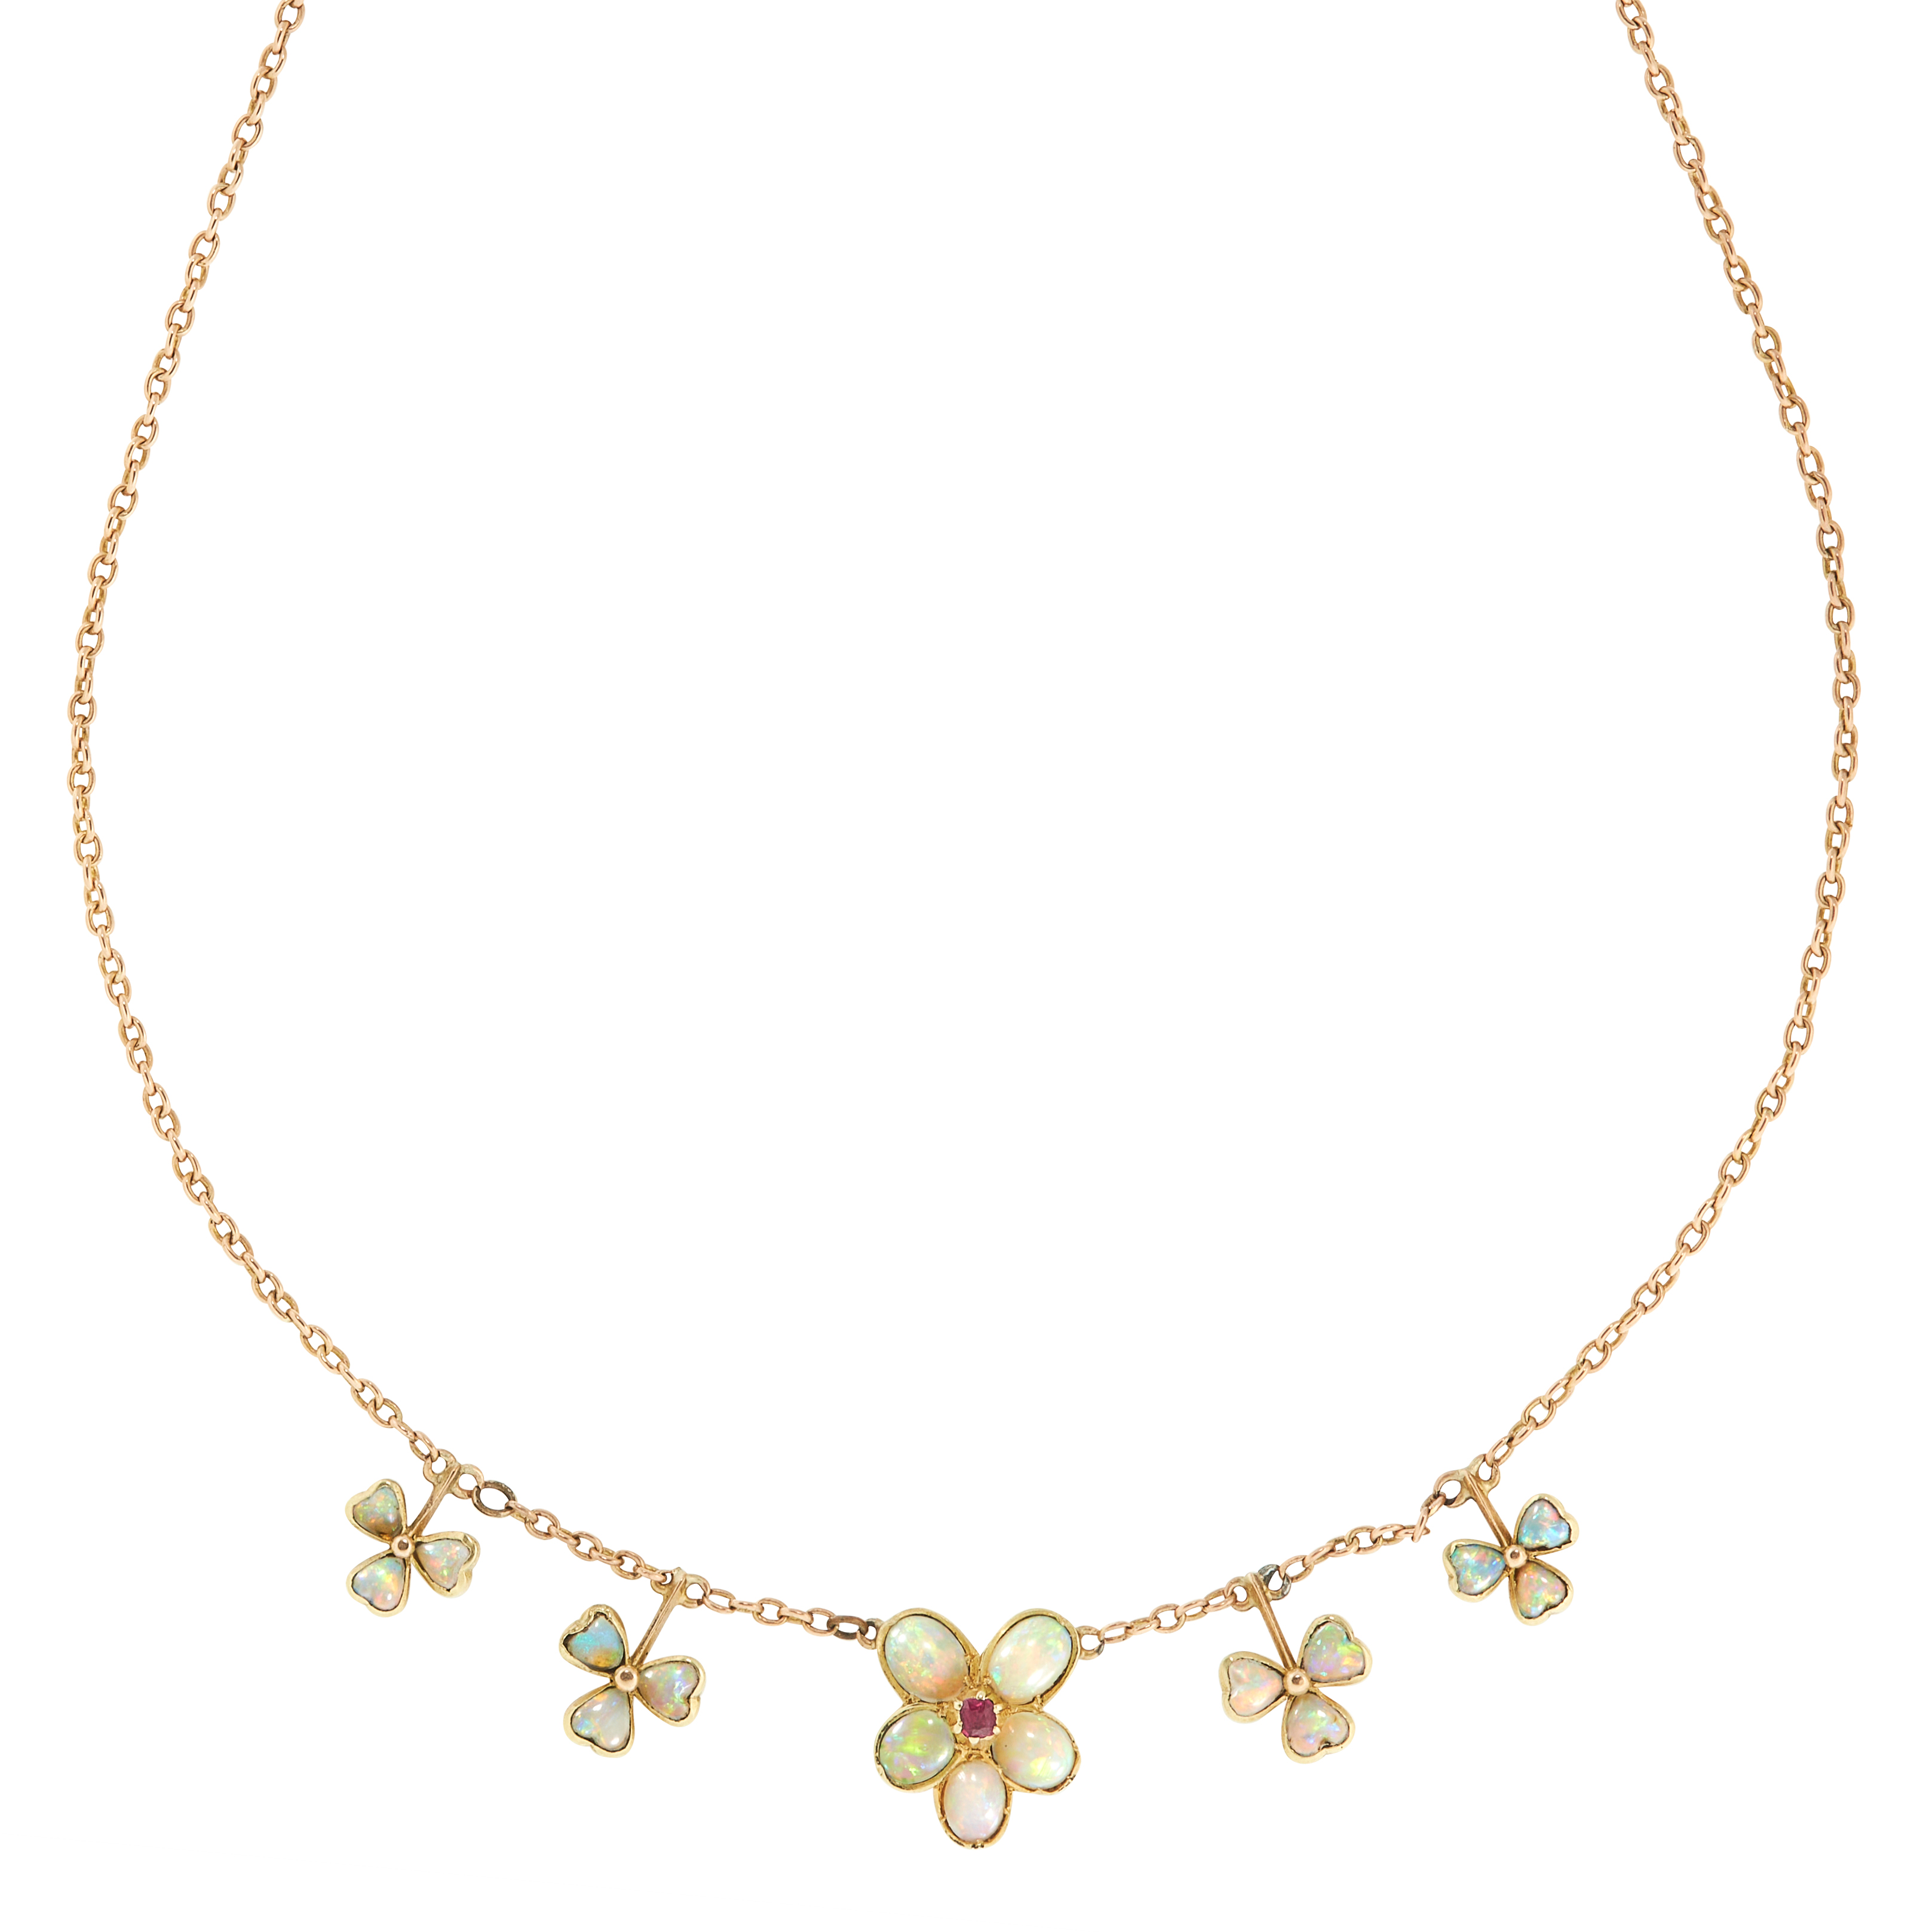 OPAL AND RUBY NECKLACE, EARLY 20TH CENTURY set with a cluster of five cabochon opals in the form